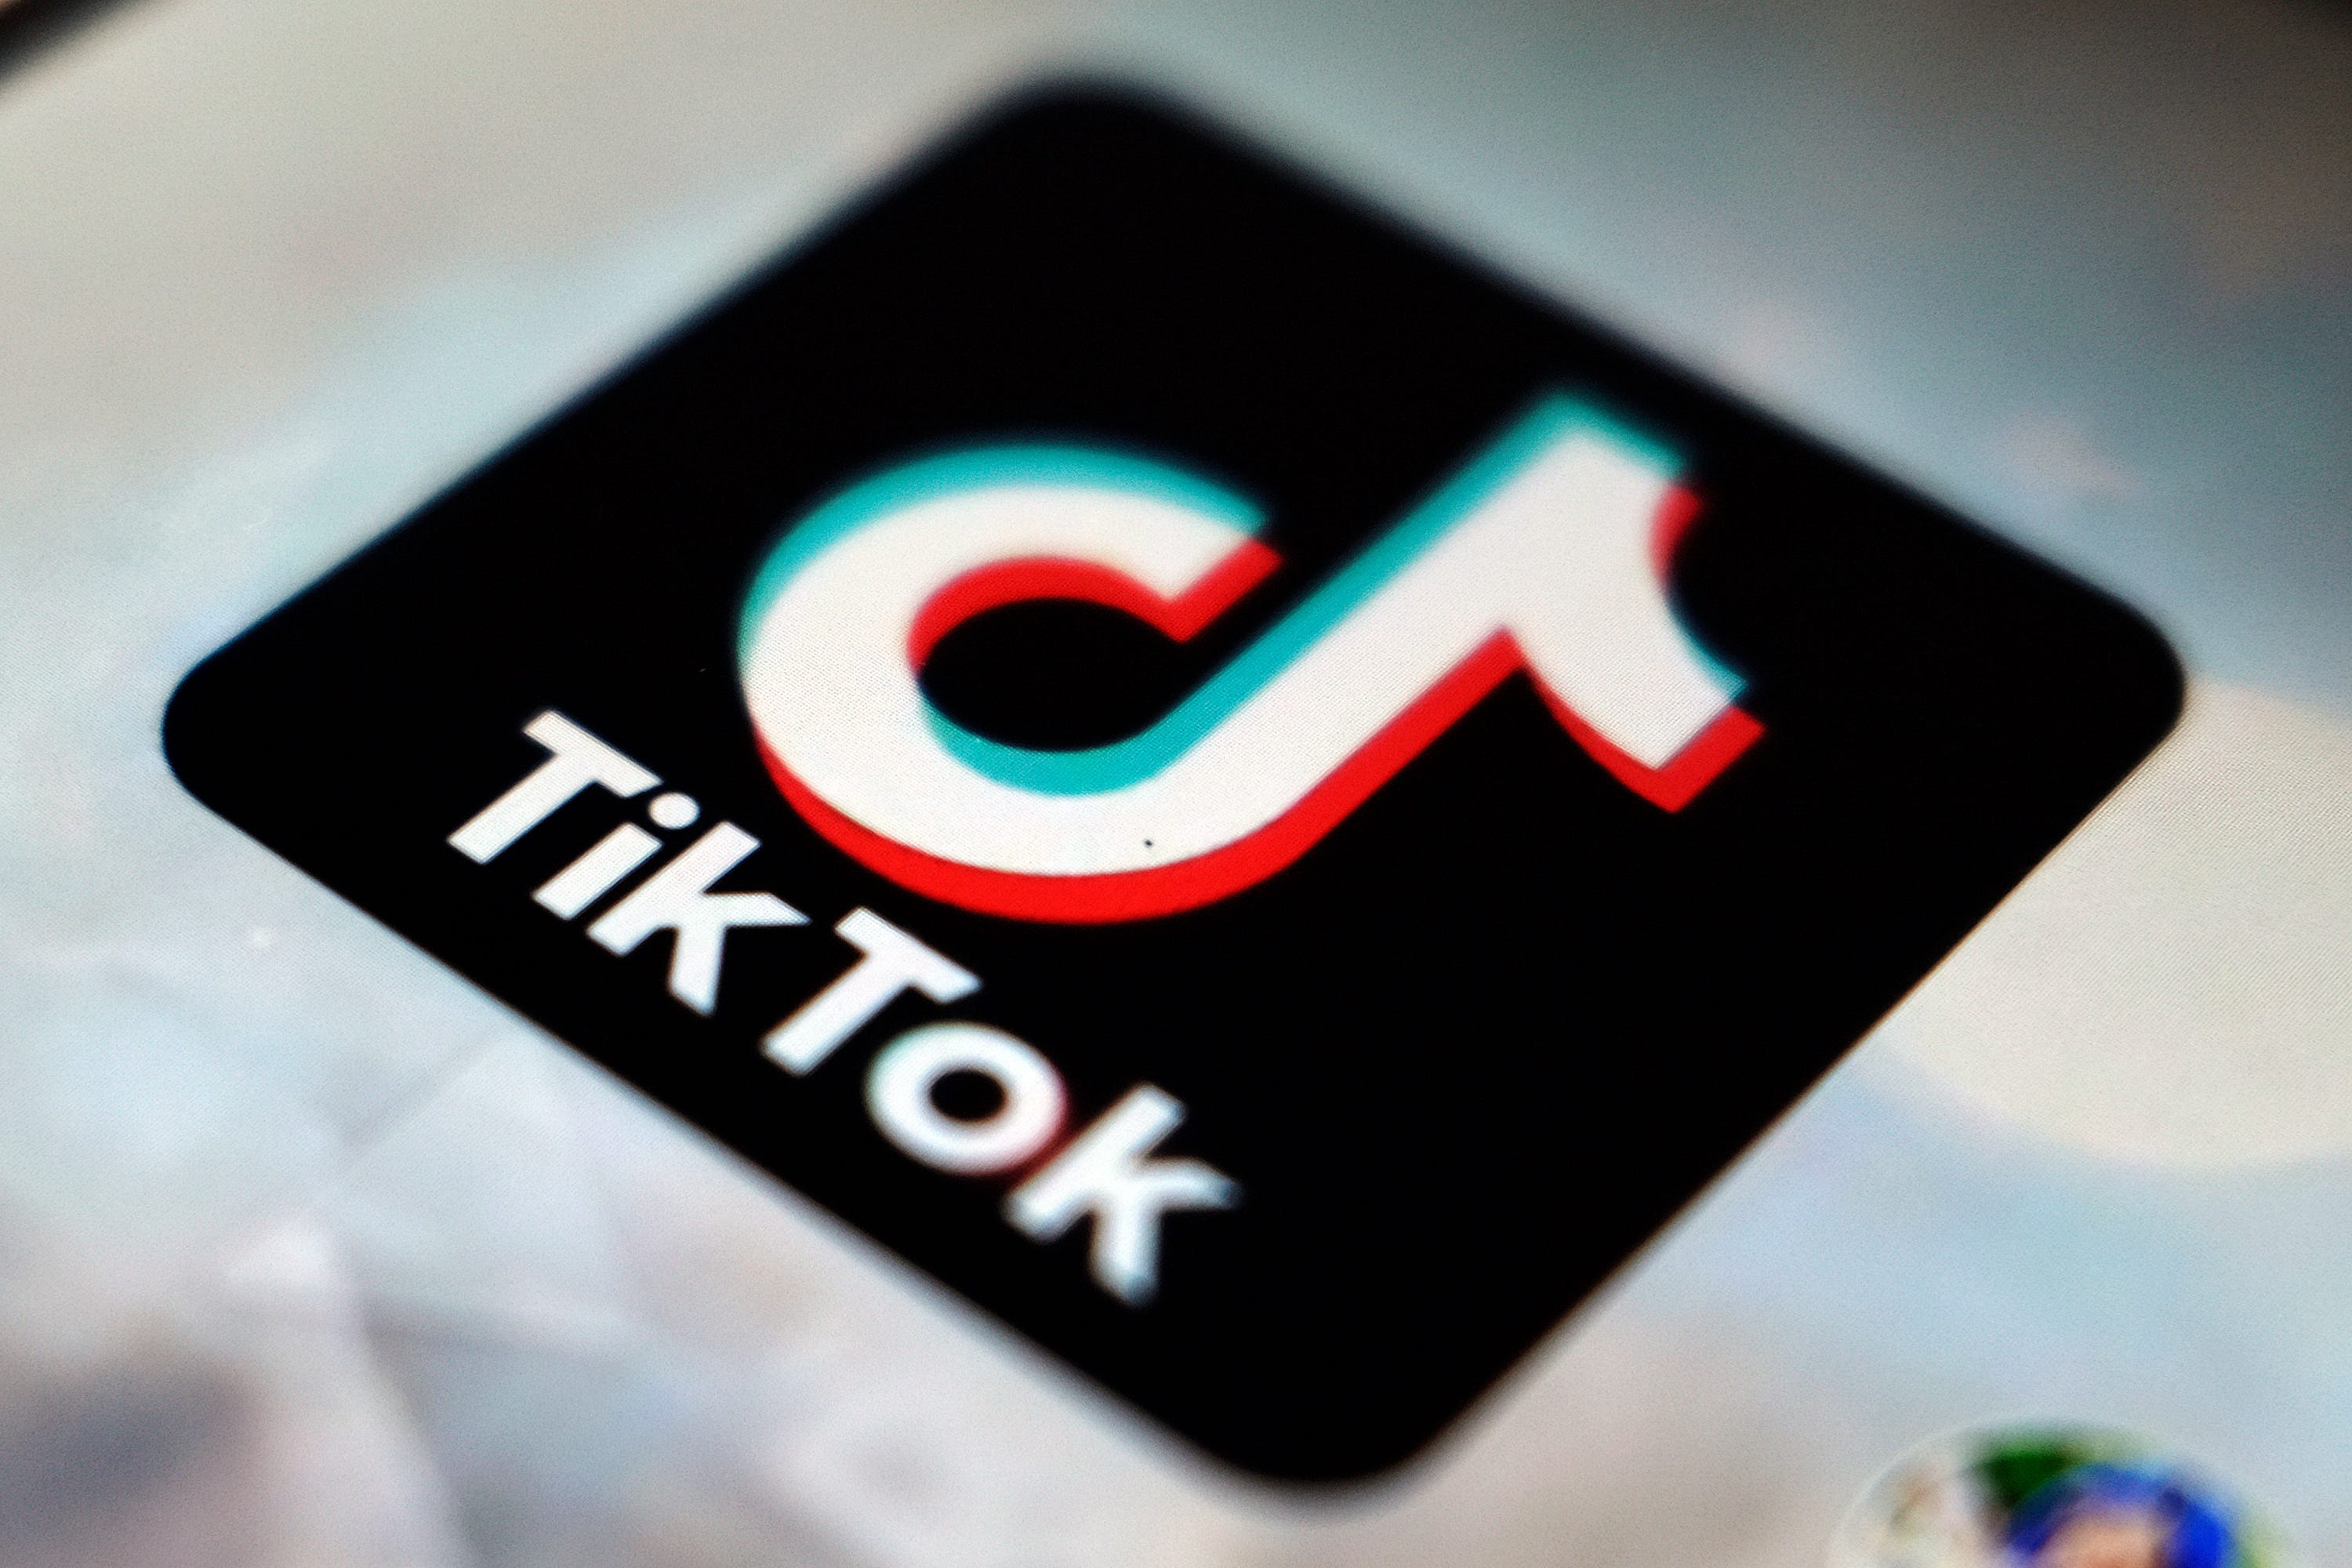 A 12-year-old died after a TikTok 'Blackout' challenge. How social media is changing peer pressure.